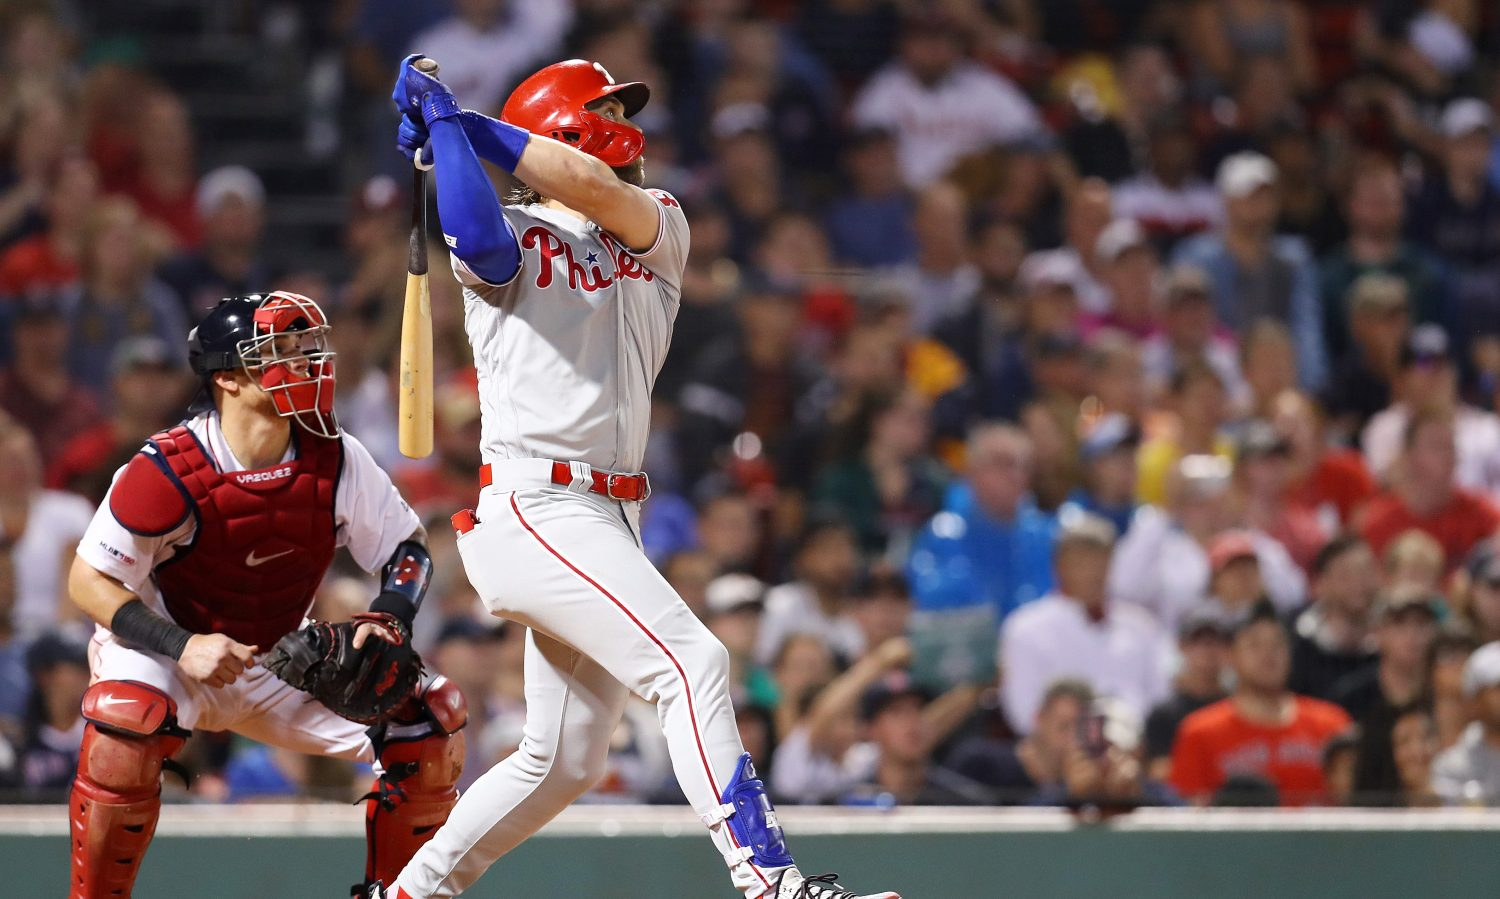 Harper's Homer Carries Phillies To 2-Game Sweep Of Red Sox